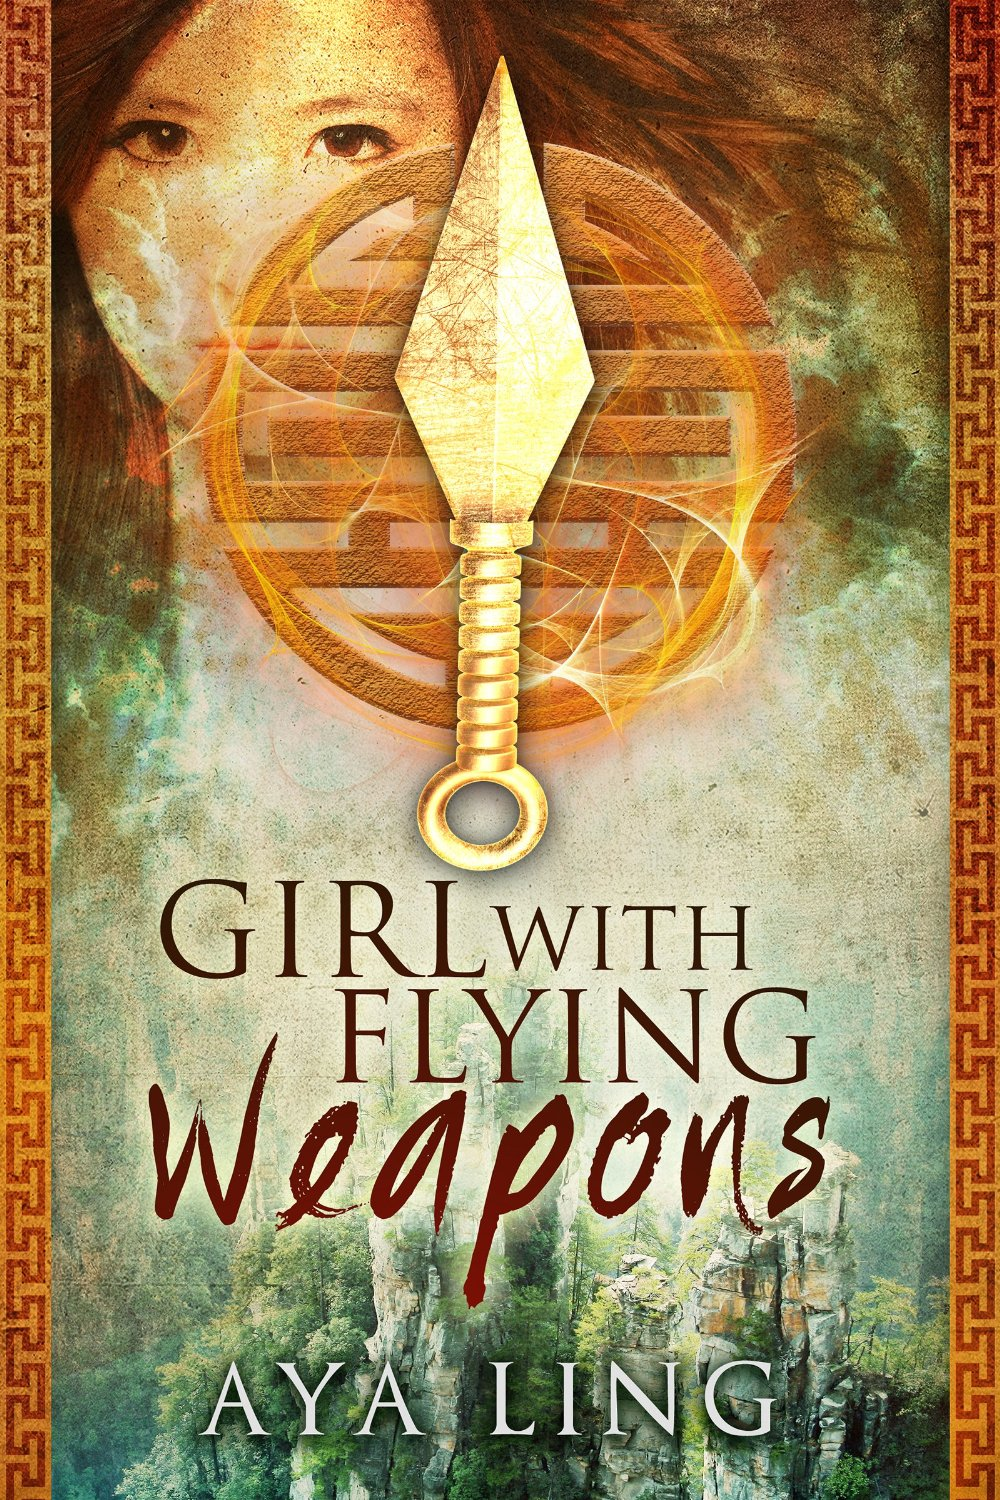 GirlFlyingWeapons